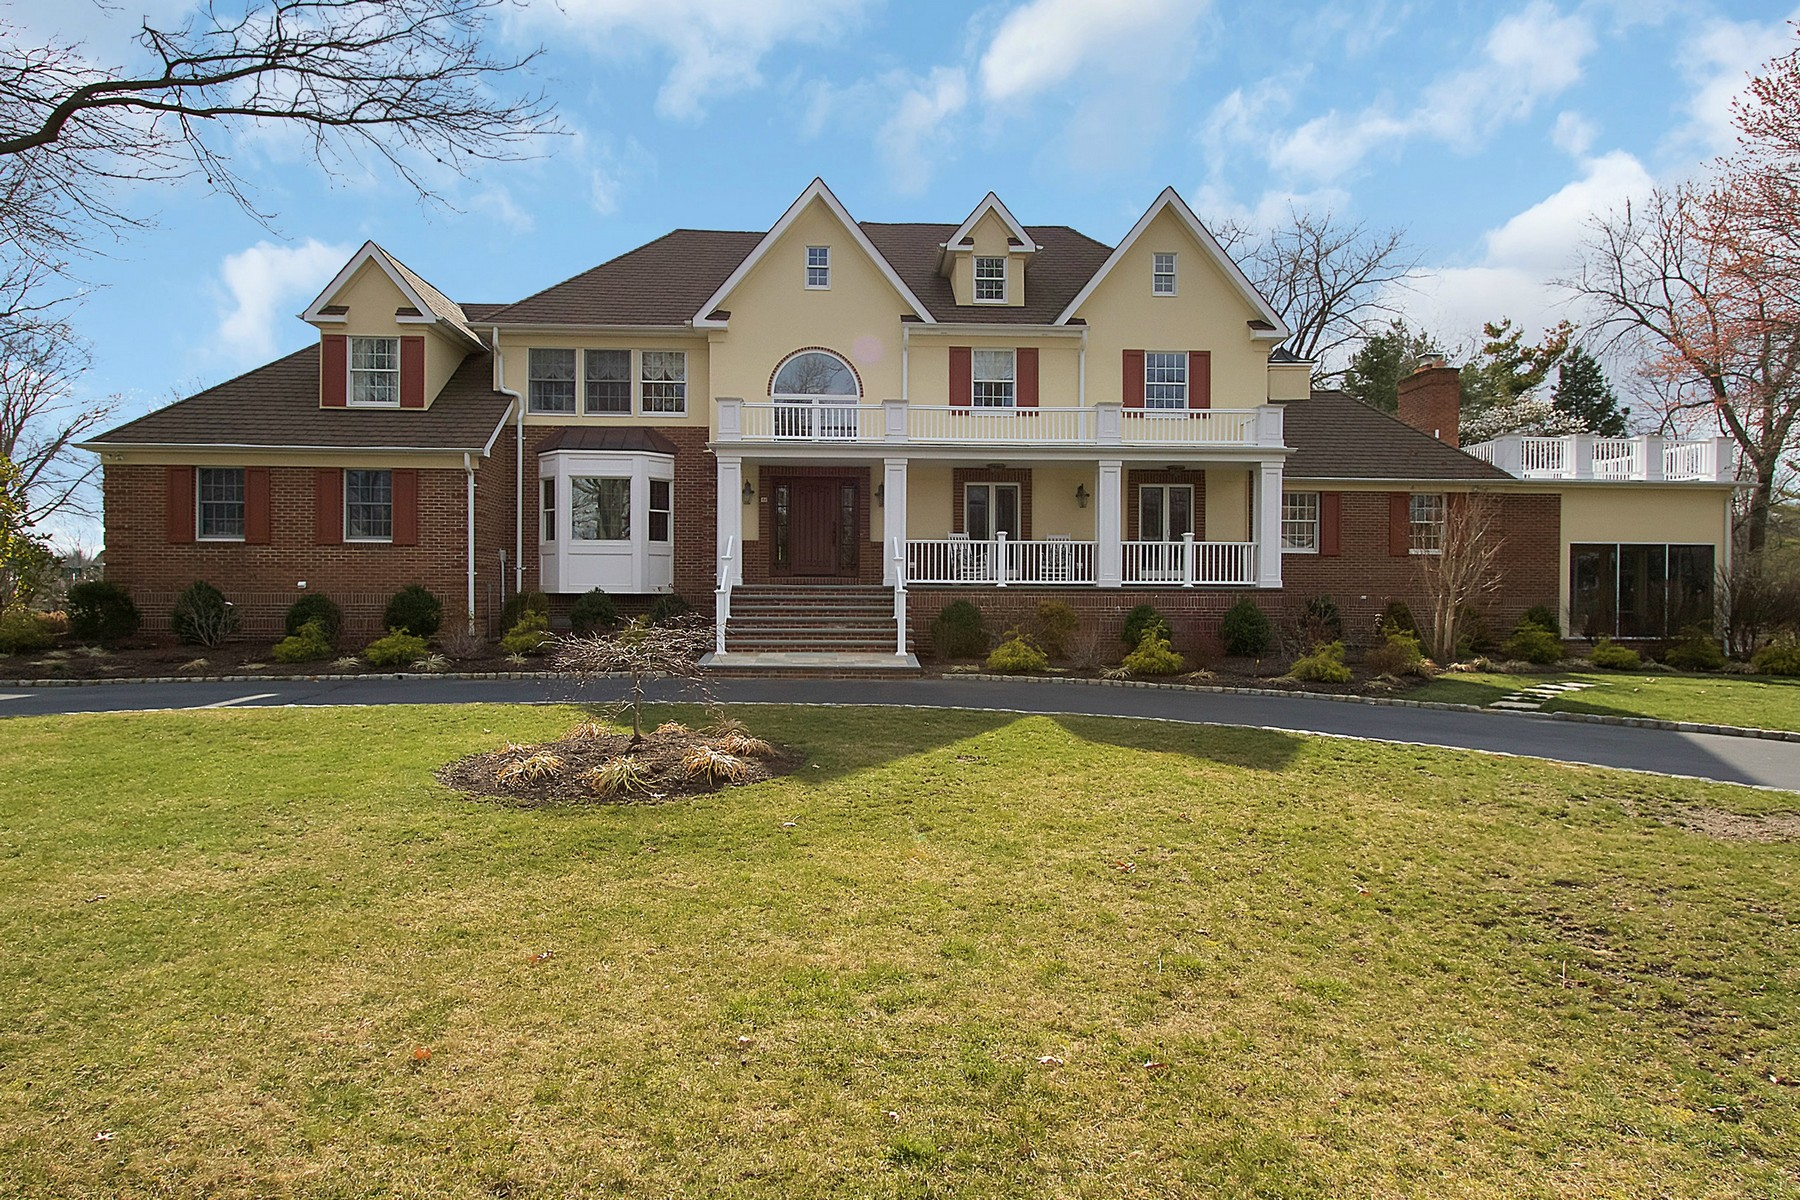 Single Family Home for Sale at Sophisticated Colonial 44 Wardell Avenue Rumson, New Jersey, 07760 United States